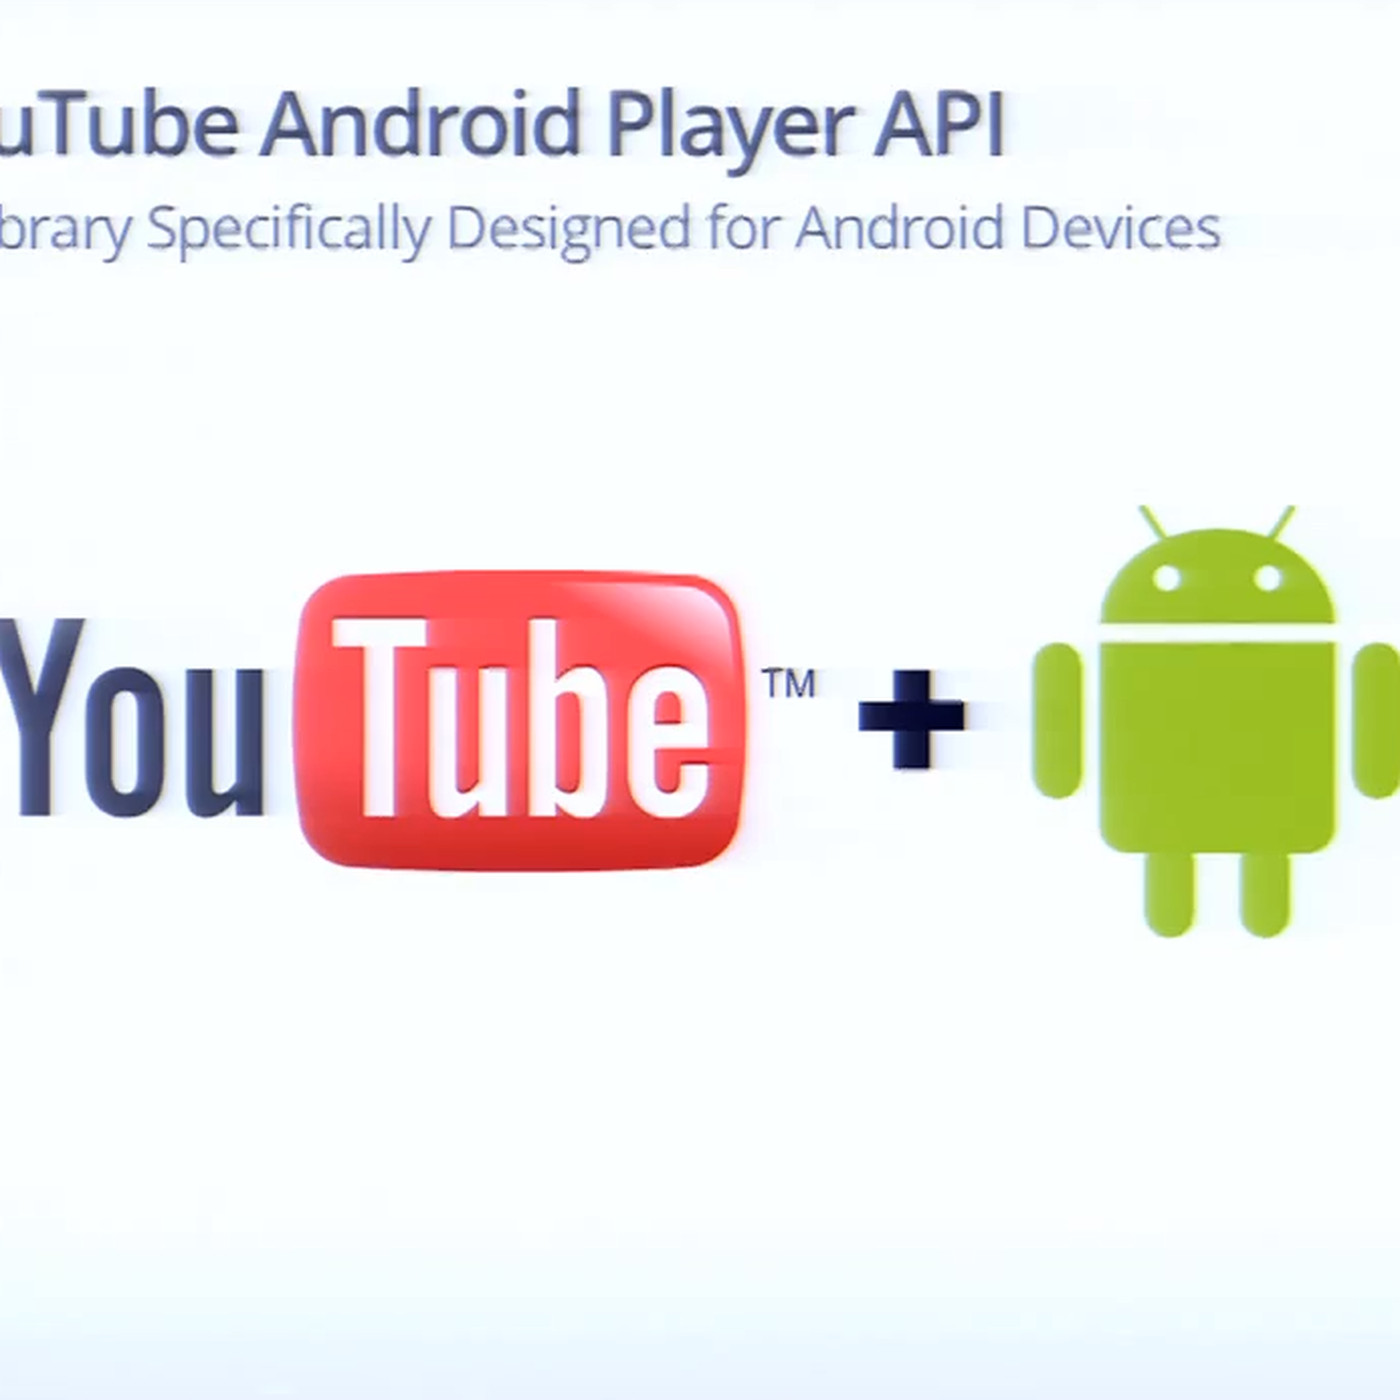 Google introduces new YouTube API for Android - The Verge